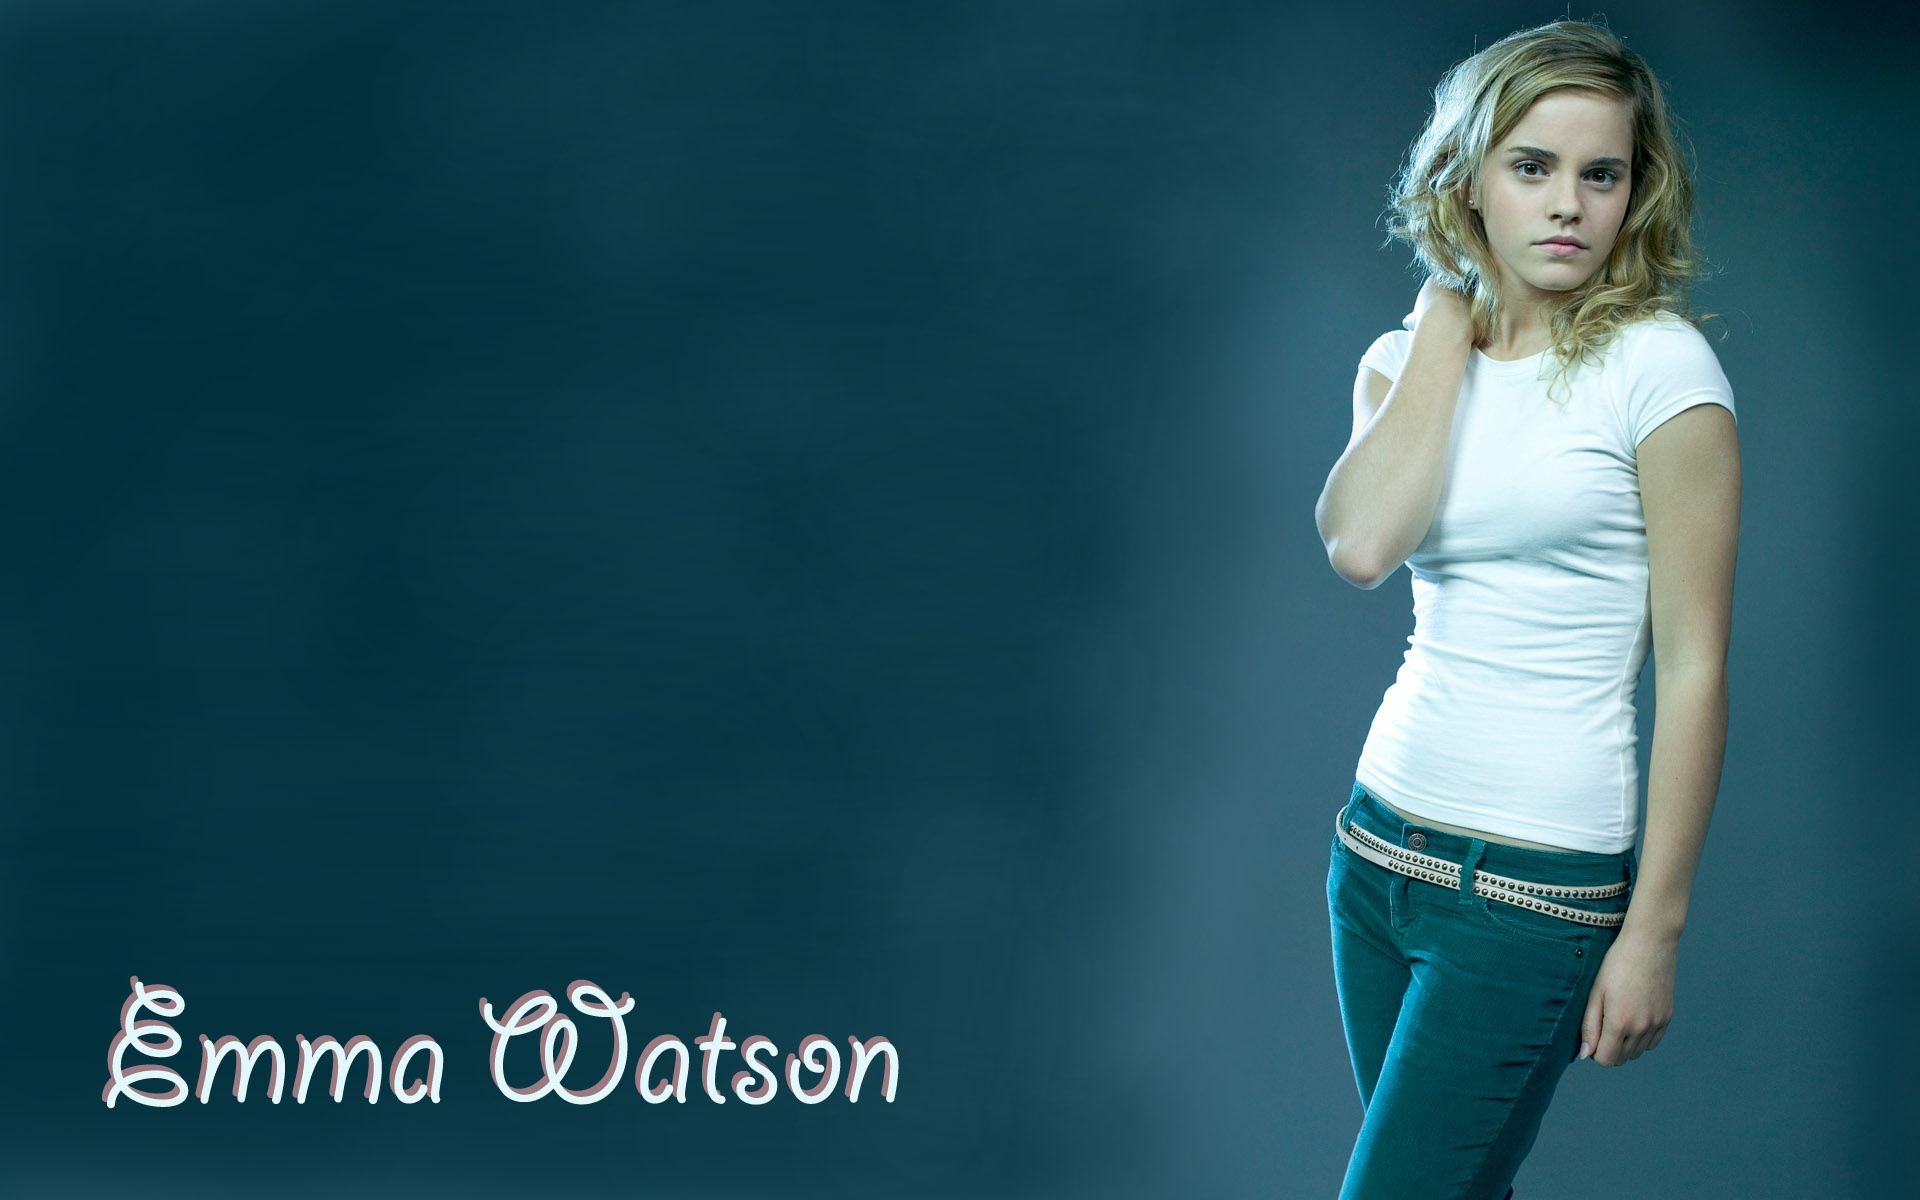 emma watson wallpapers hd A13